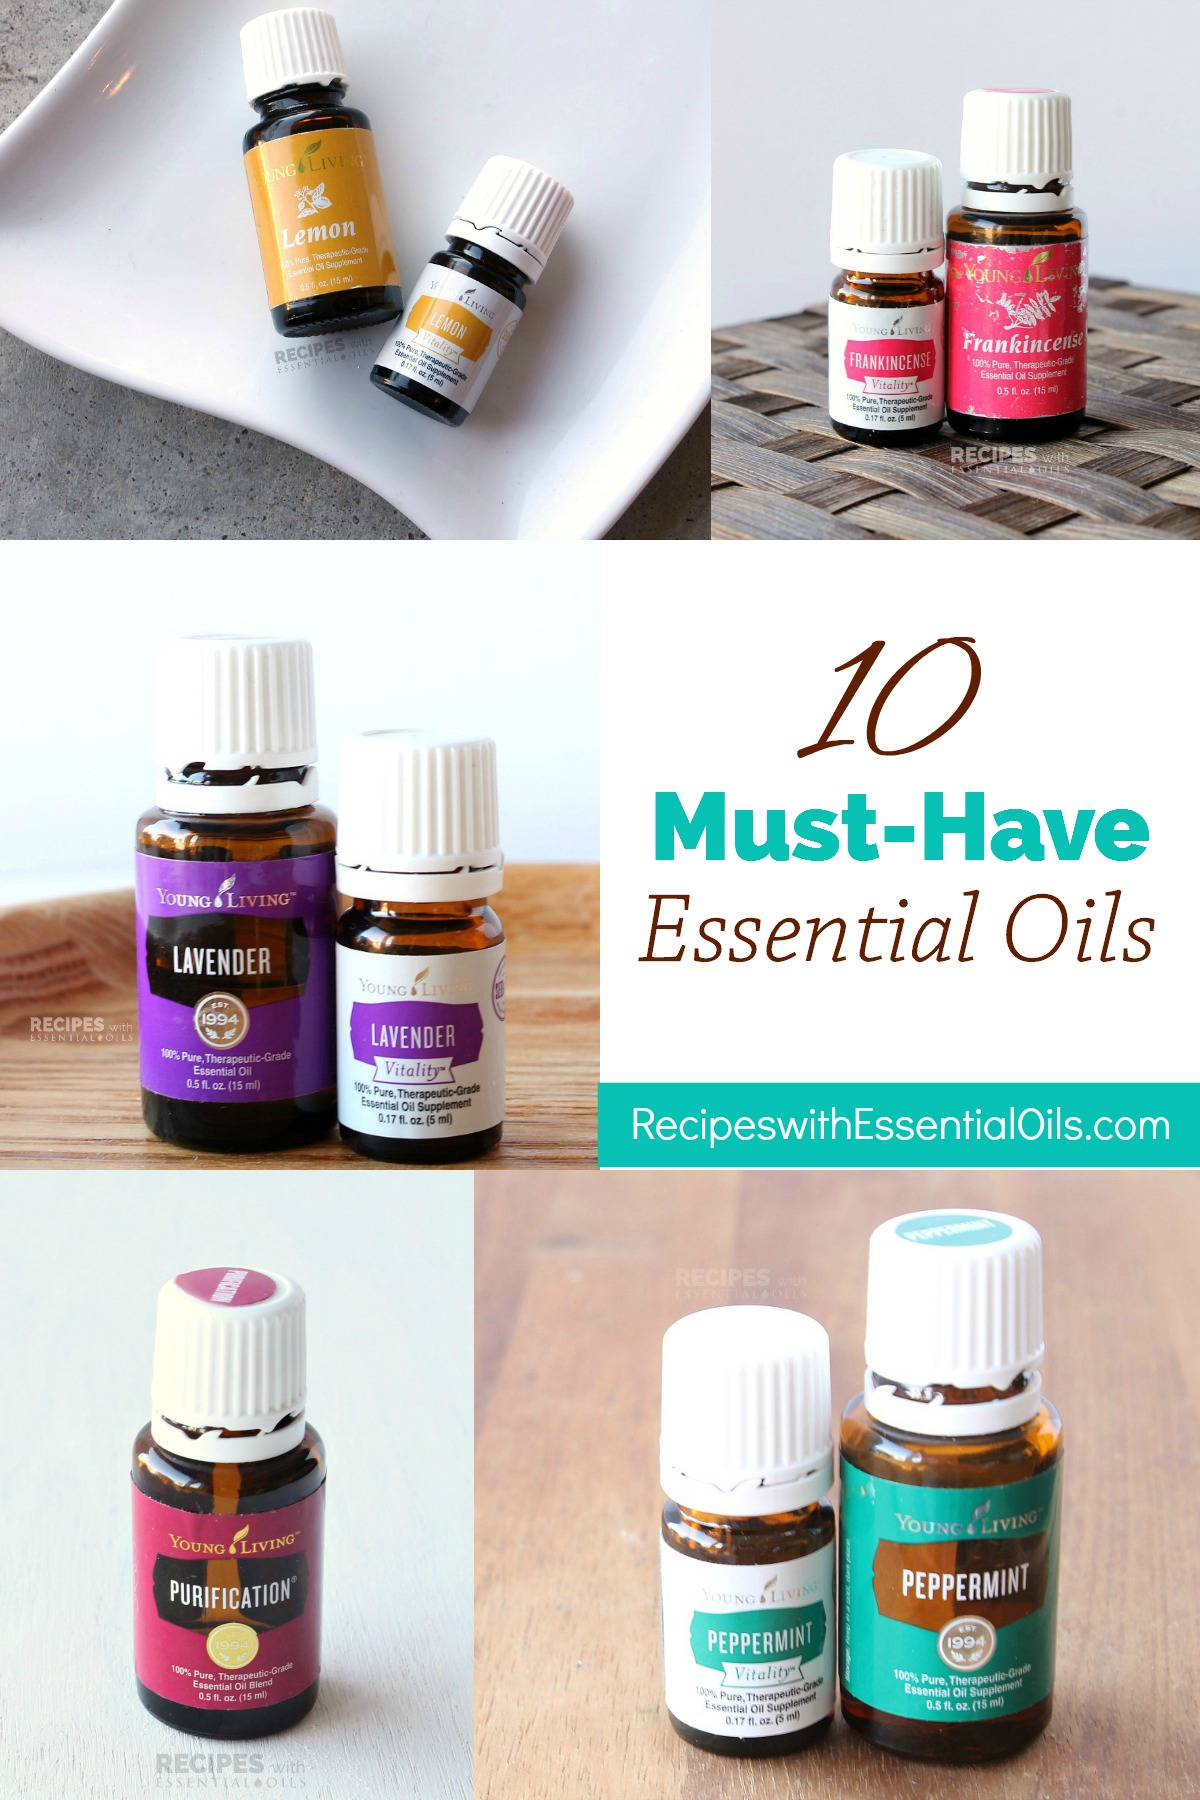 10 Must Have Essential Oils from RecipeswithEssentialOils.com